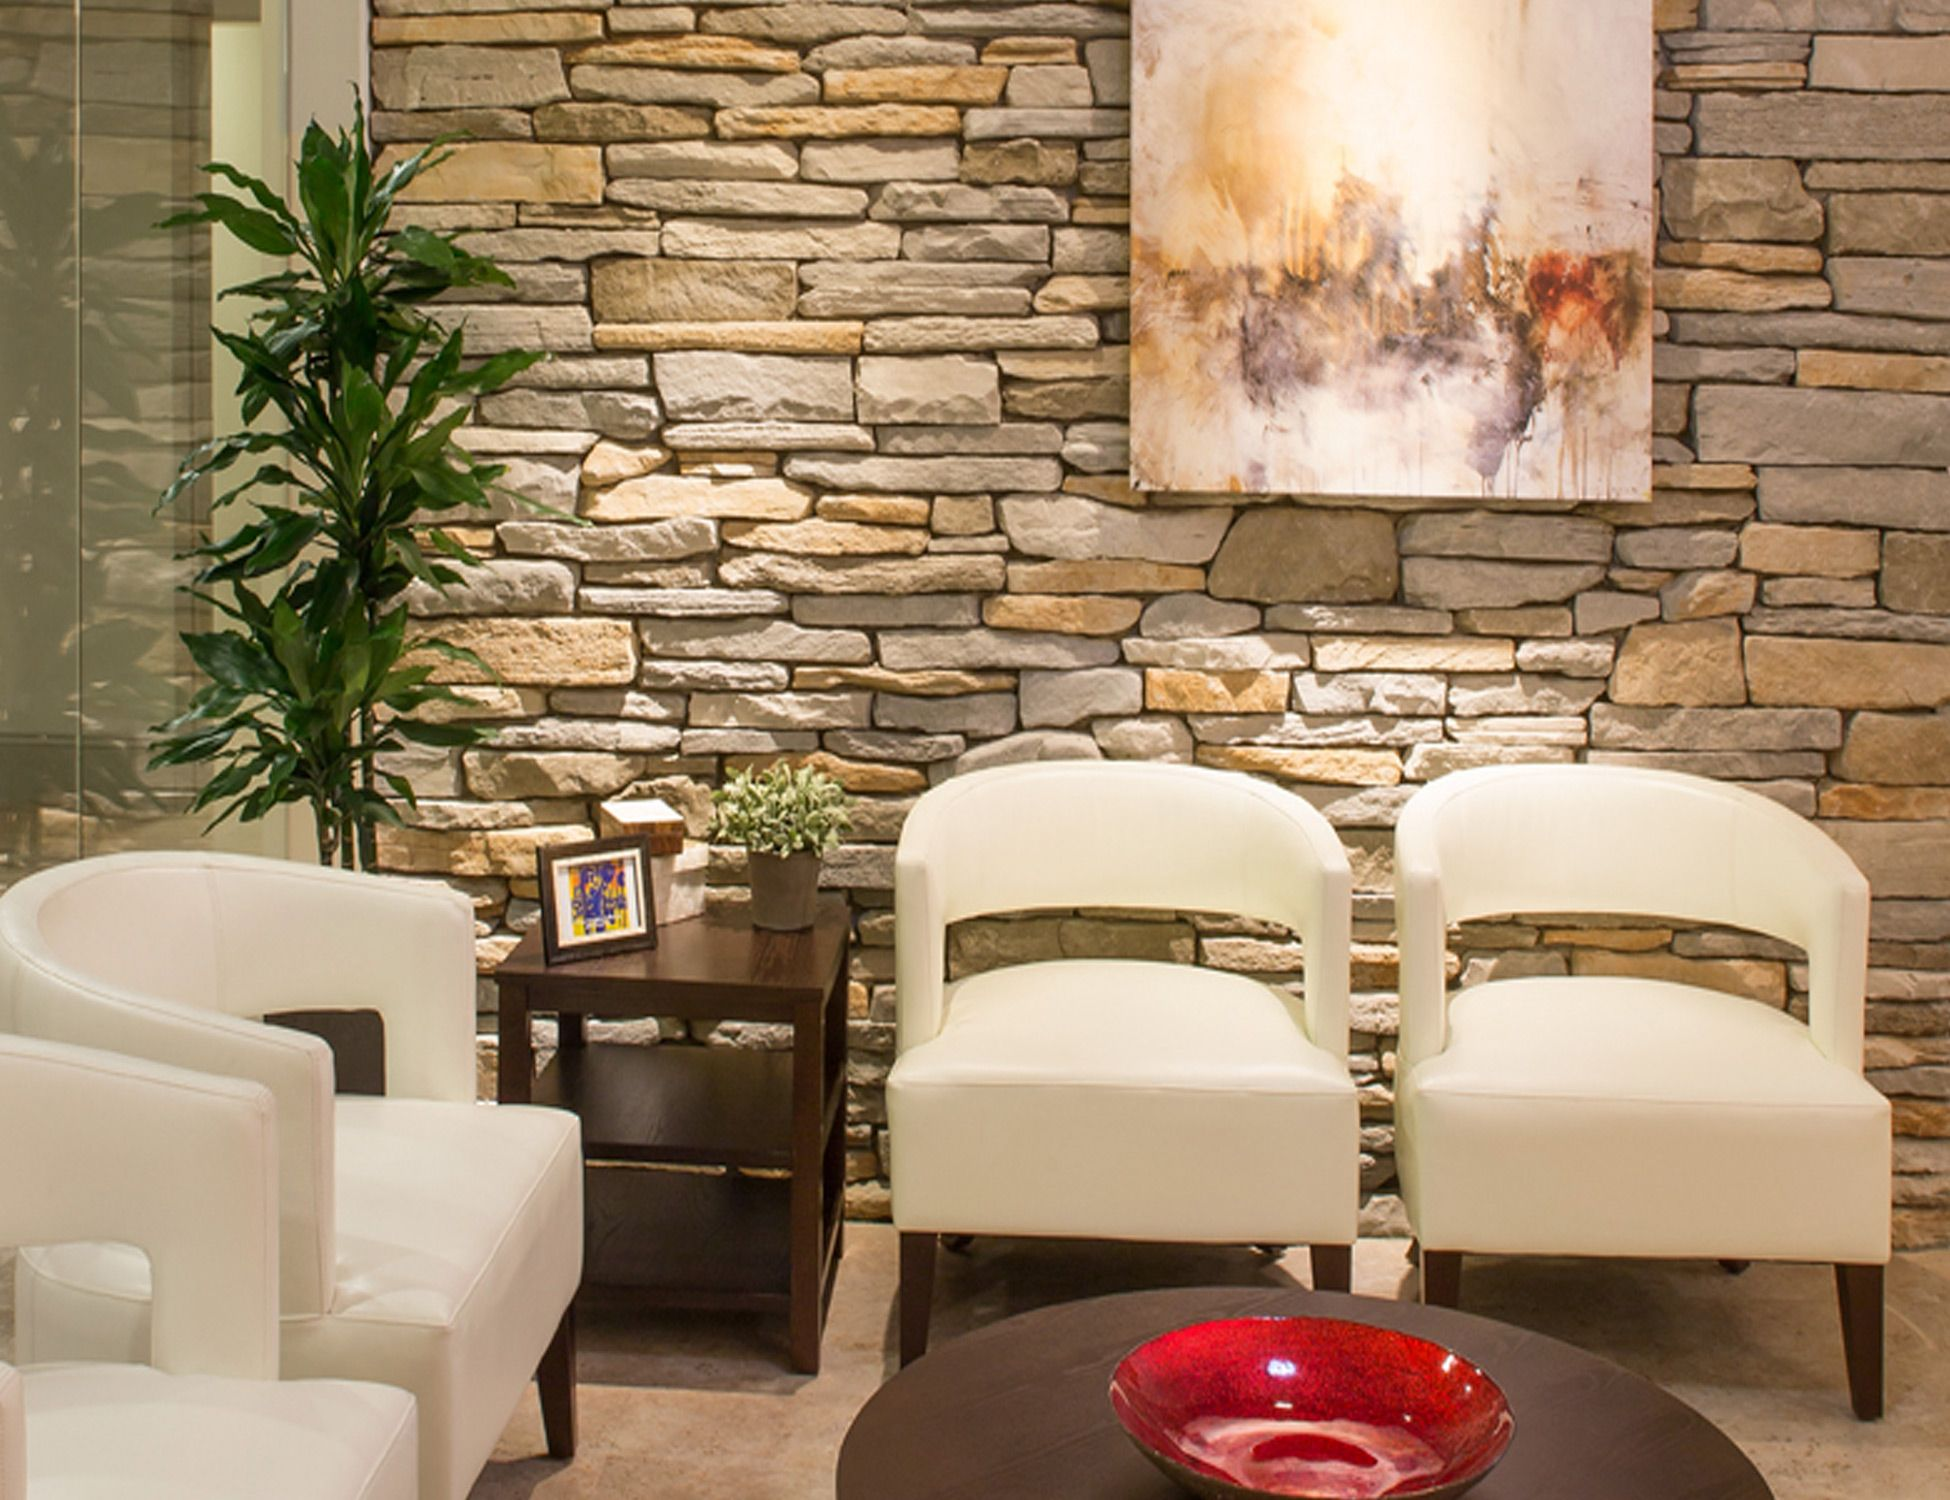 Texture and lighting create a welcome inviting waiting Chiropractic office designs